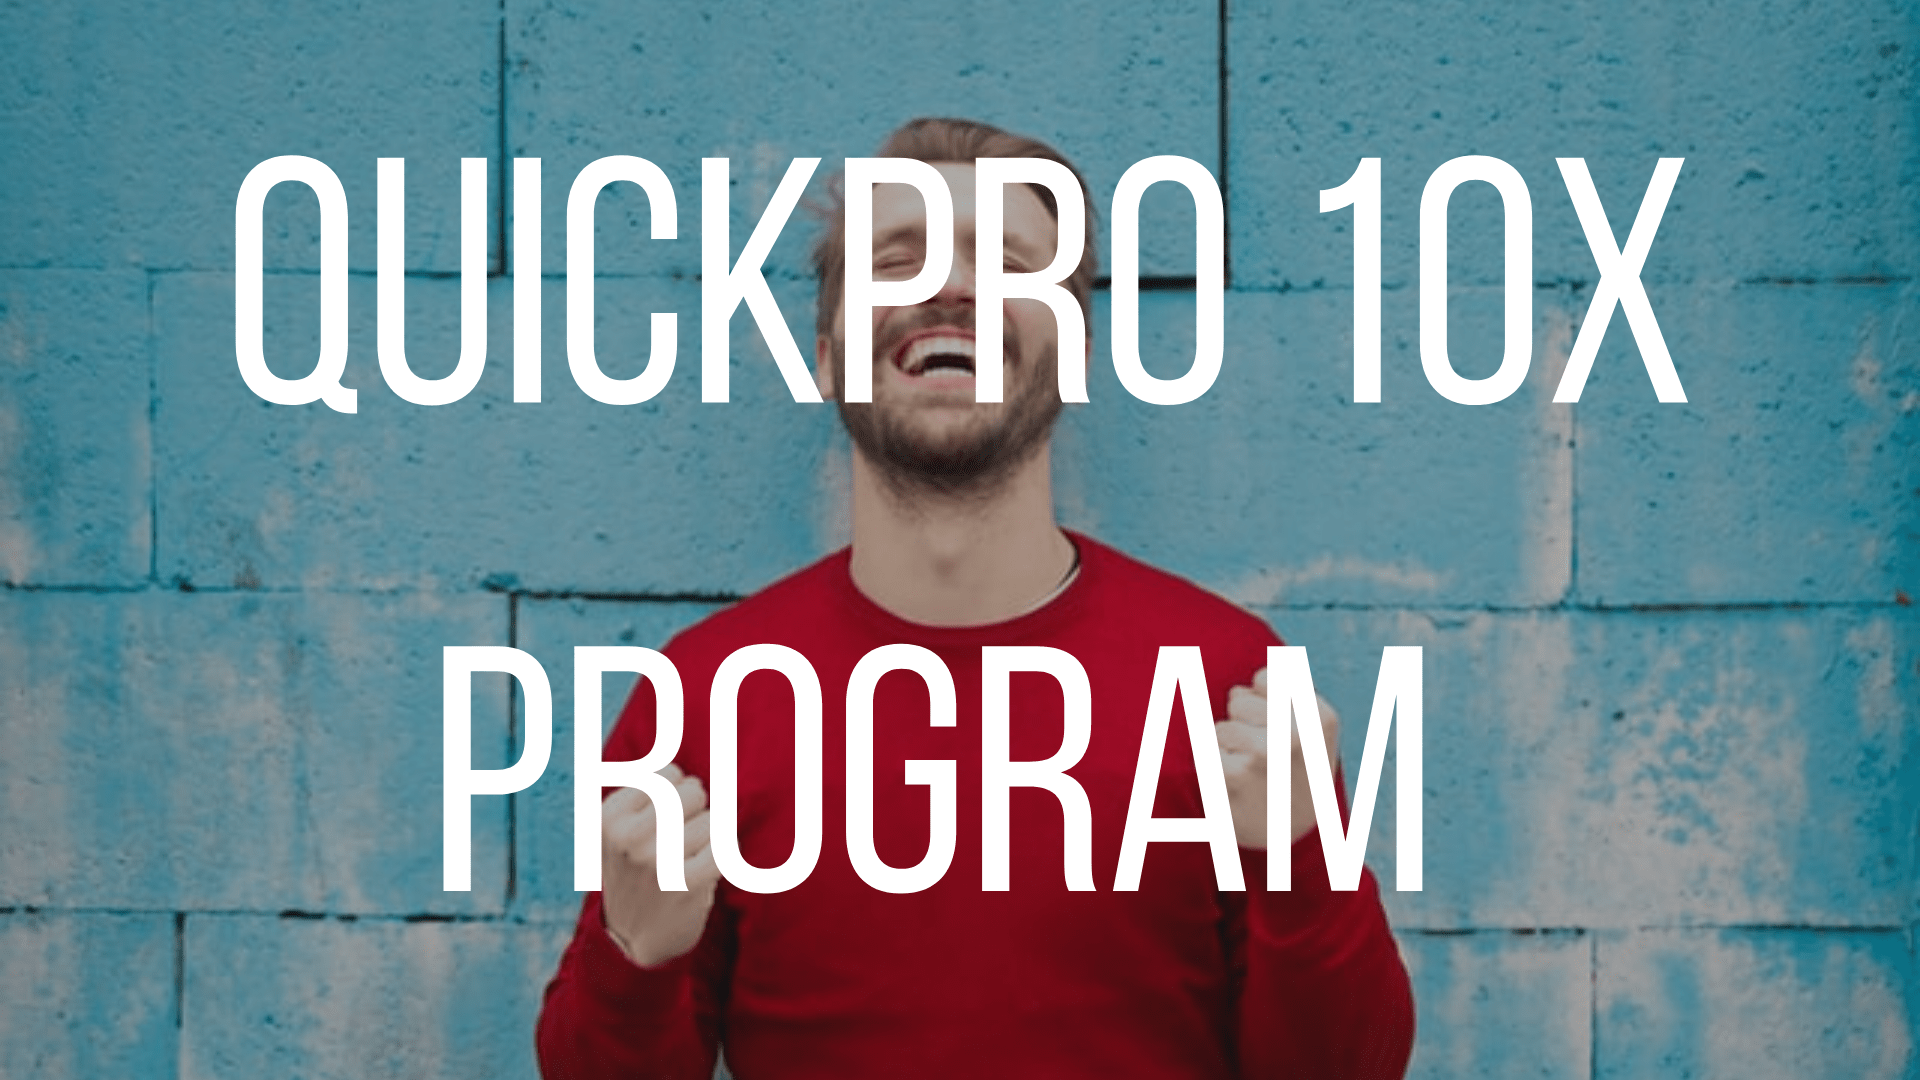 Quickpro's 10X Program